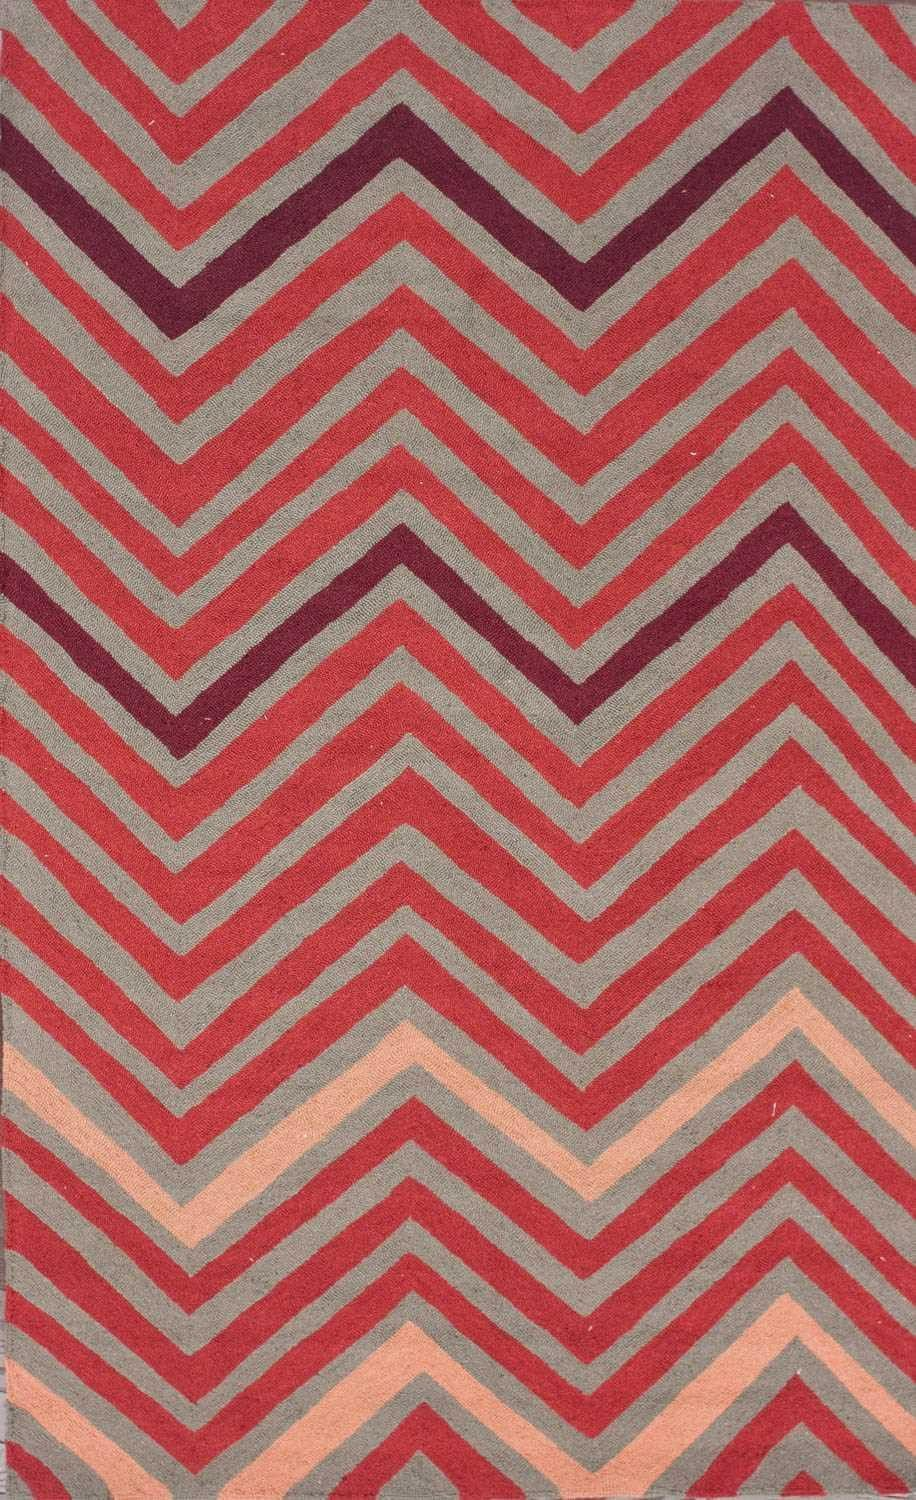 Taza 100% Wool Hand-Hooked Area Rug in Fire design by NuLoom